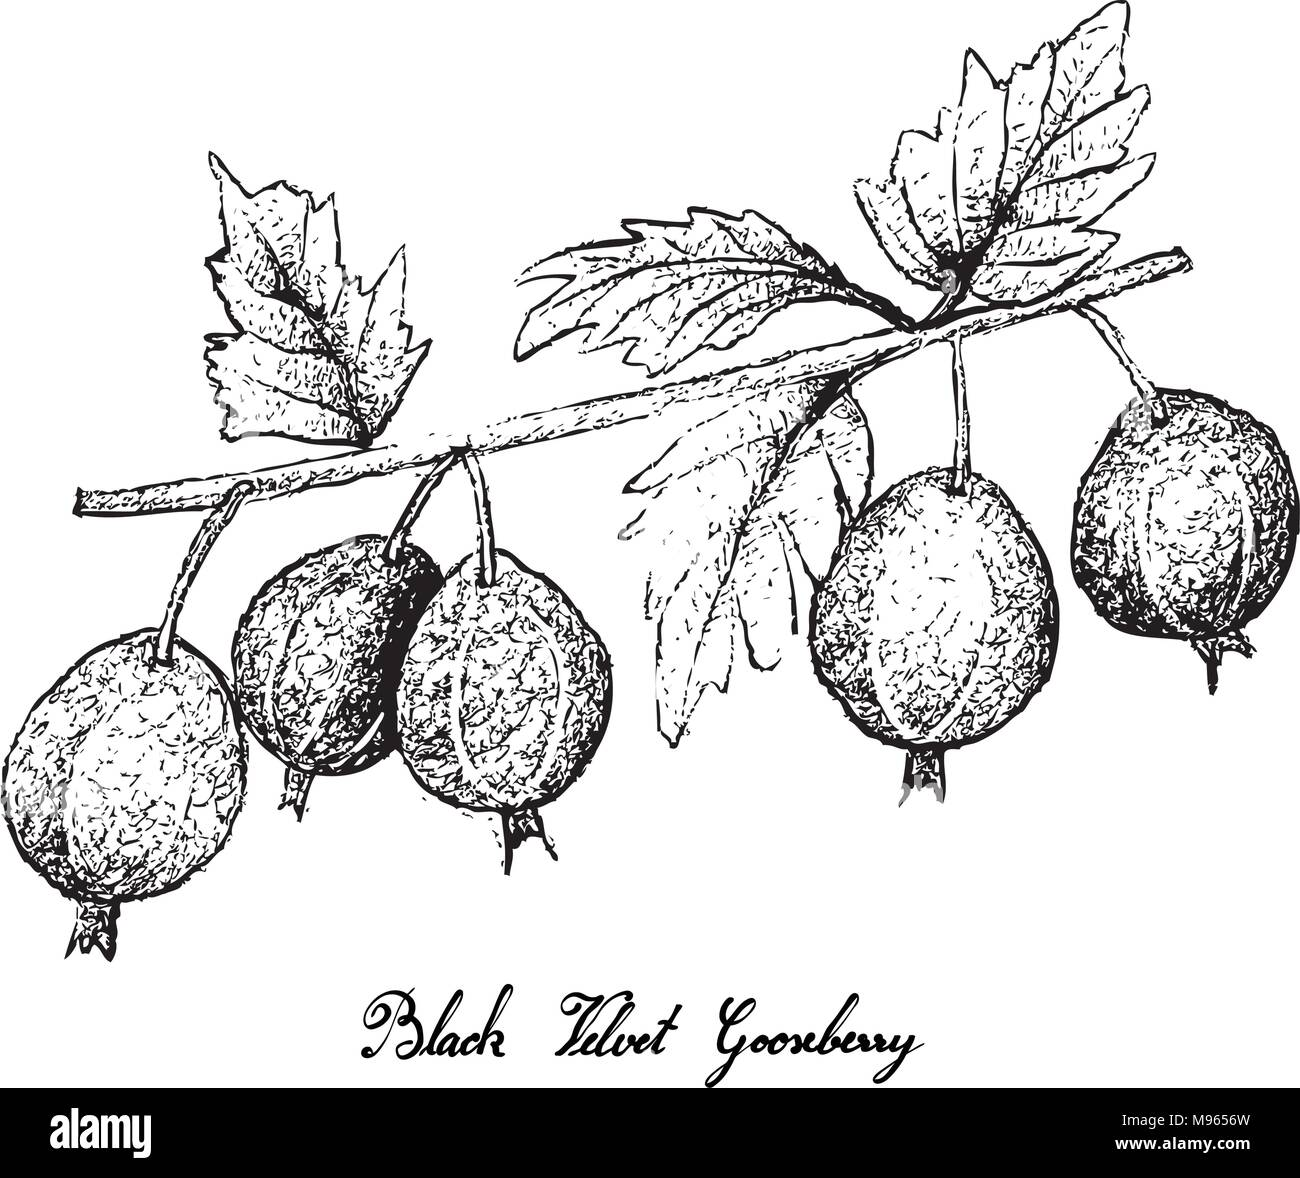 Berry Fruits, Illustration of Hand Drawn Sketch Fresh Black Velvet Gooseberry or Ribes Oxyacanthoides Fruit Isolated on White Background. - Stock Vector